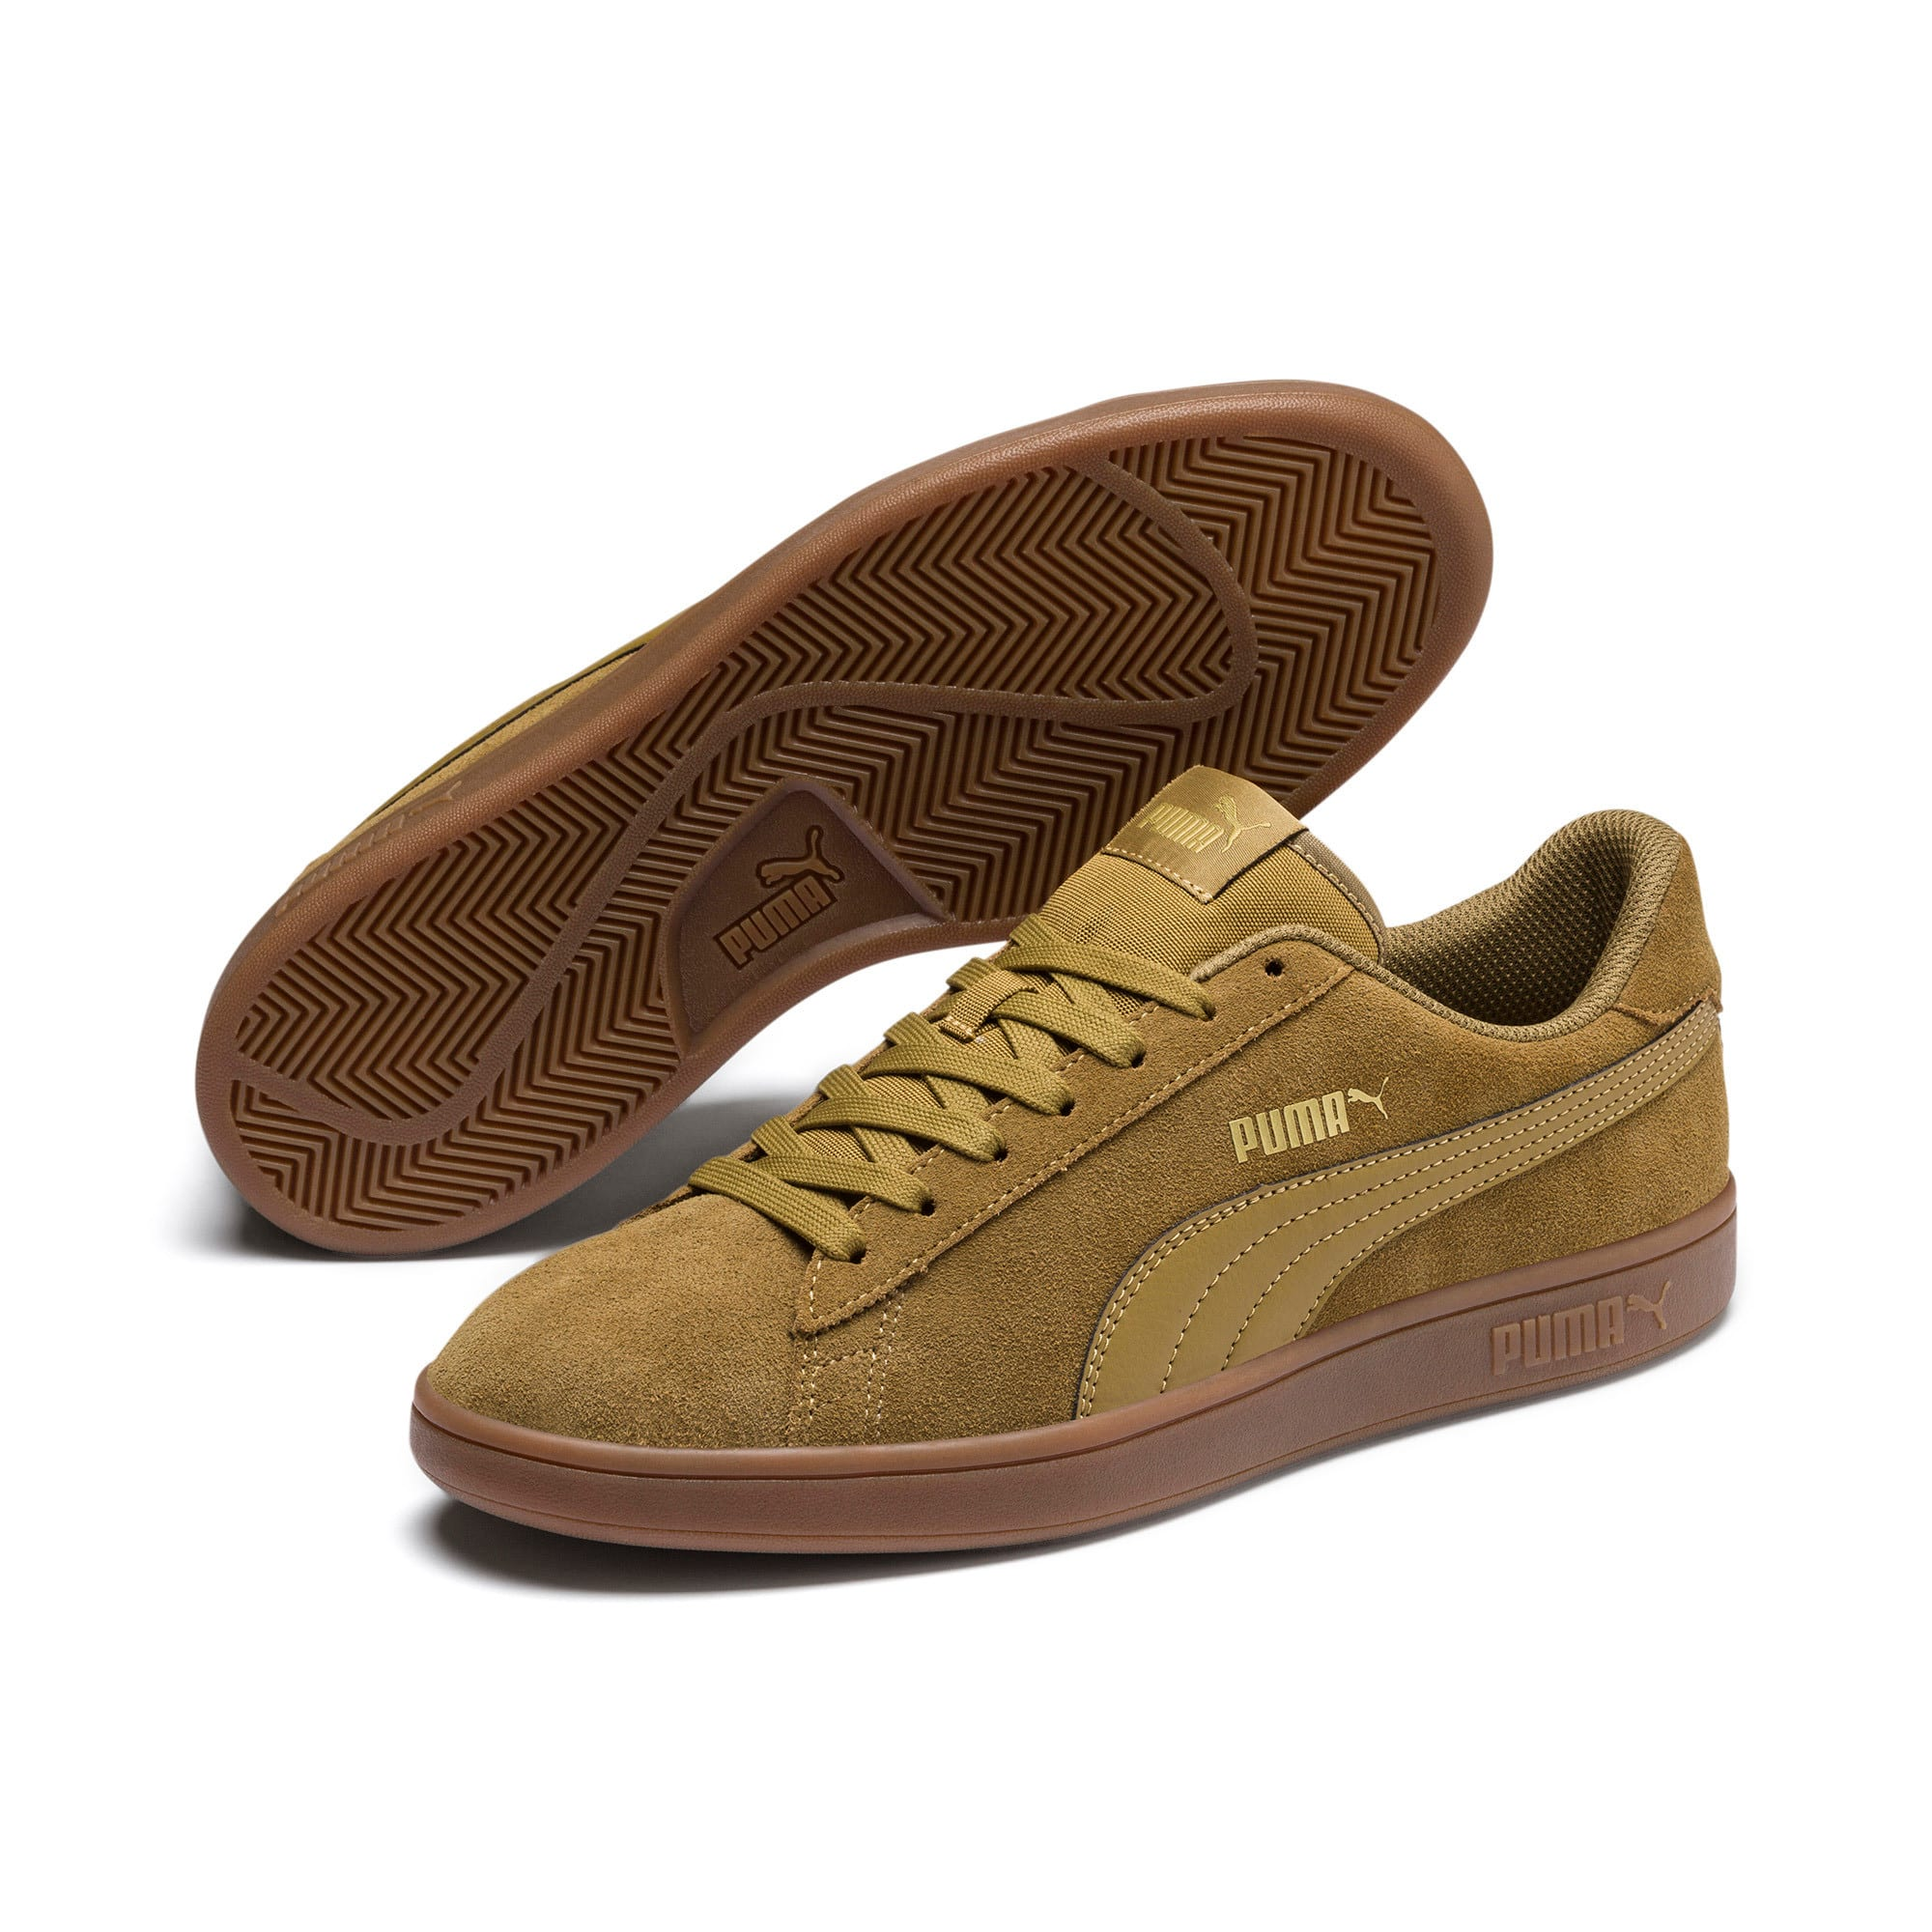 Thumbnail 2 of PUMA Smash v2 Sneakers, Moss Green-Team Gold-Gum, medium